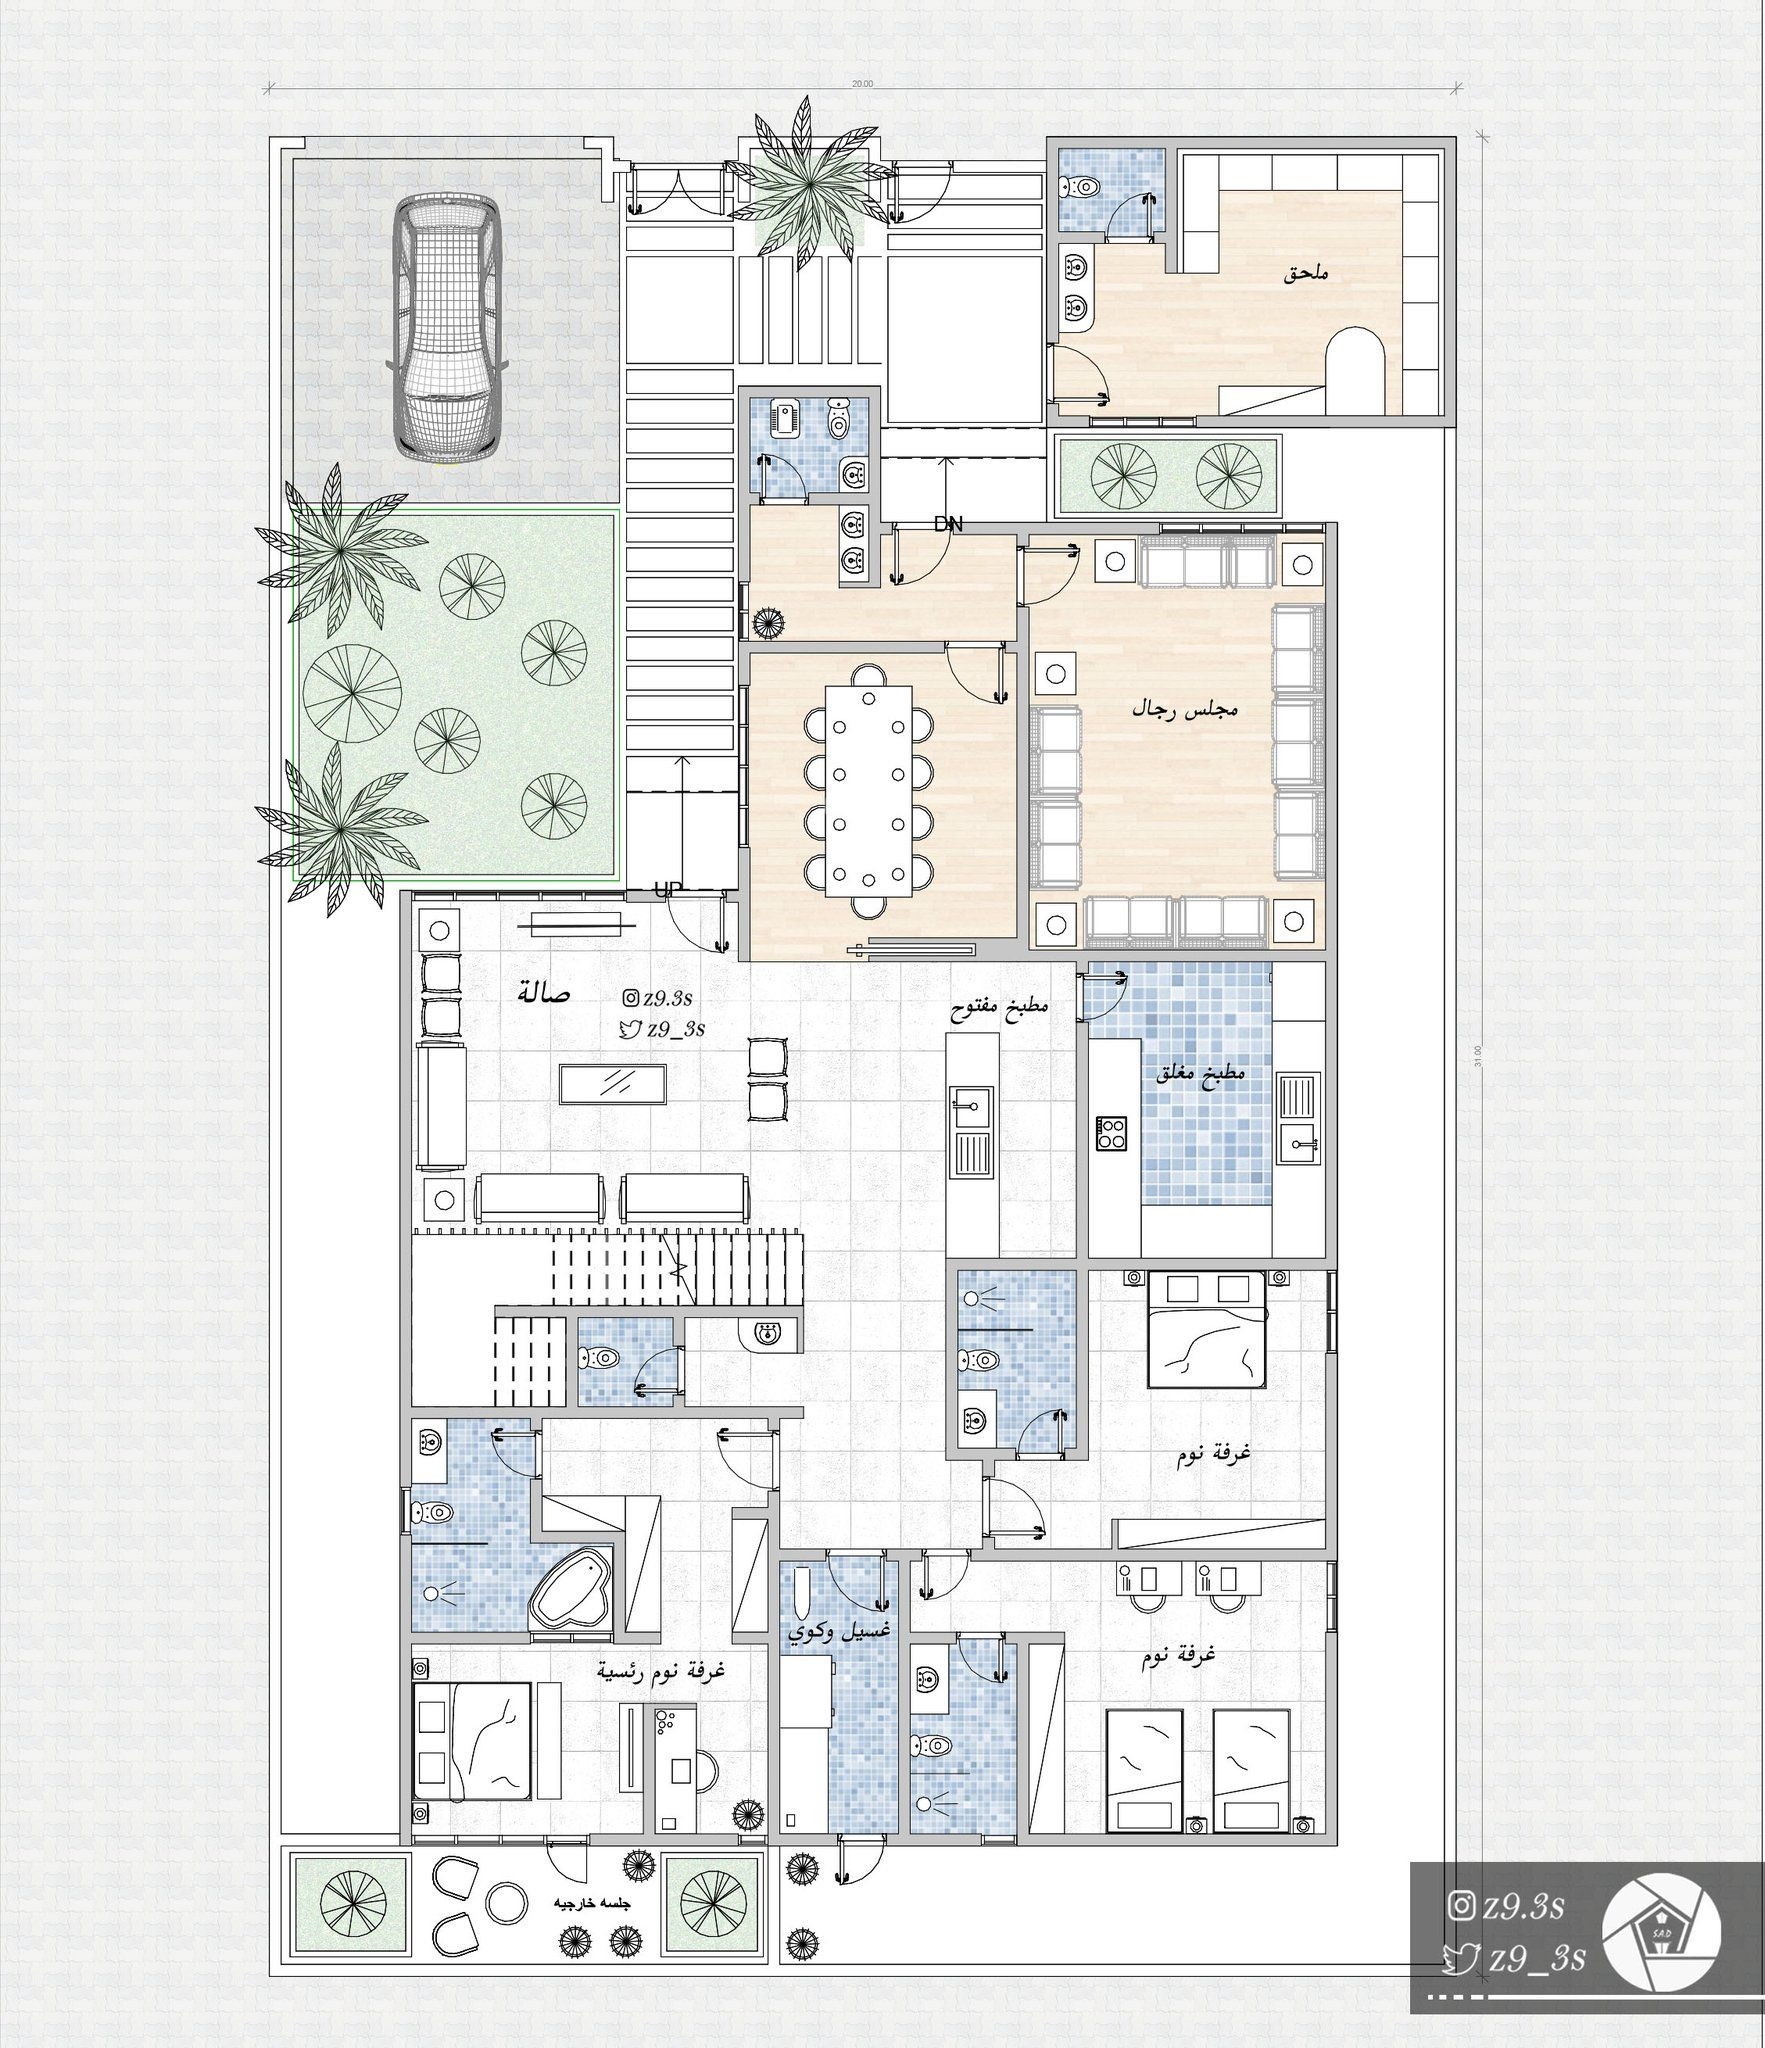 Pin By Nada On مخطط Basement House Plans Model House Plan Family House Plans